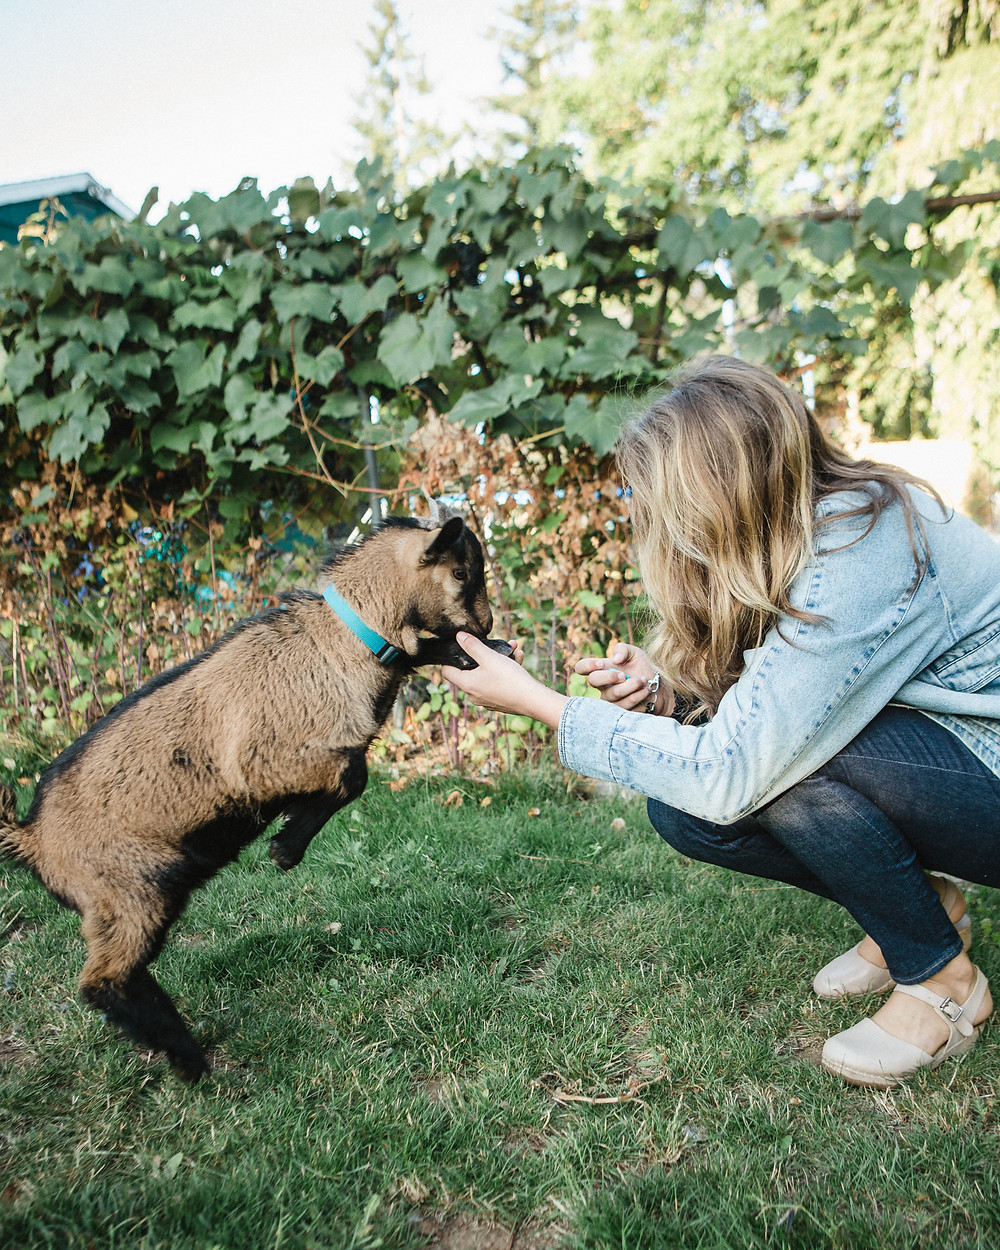 Benedict, our male goat, and me.